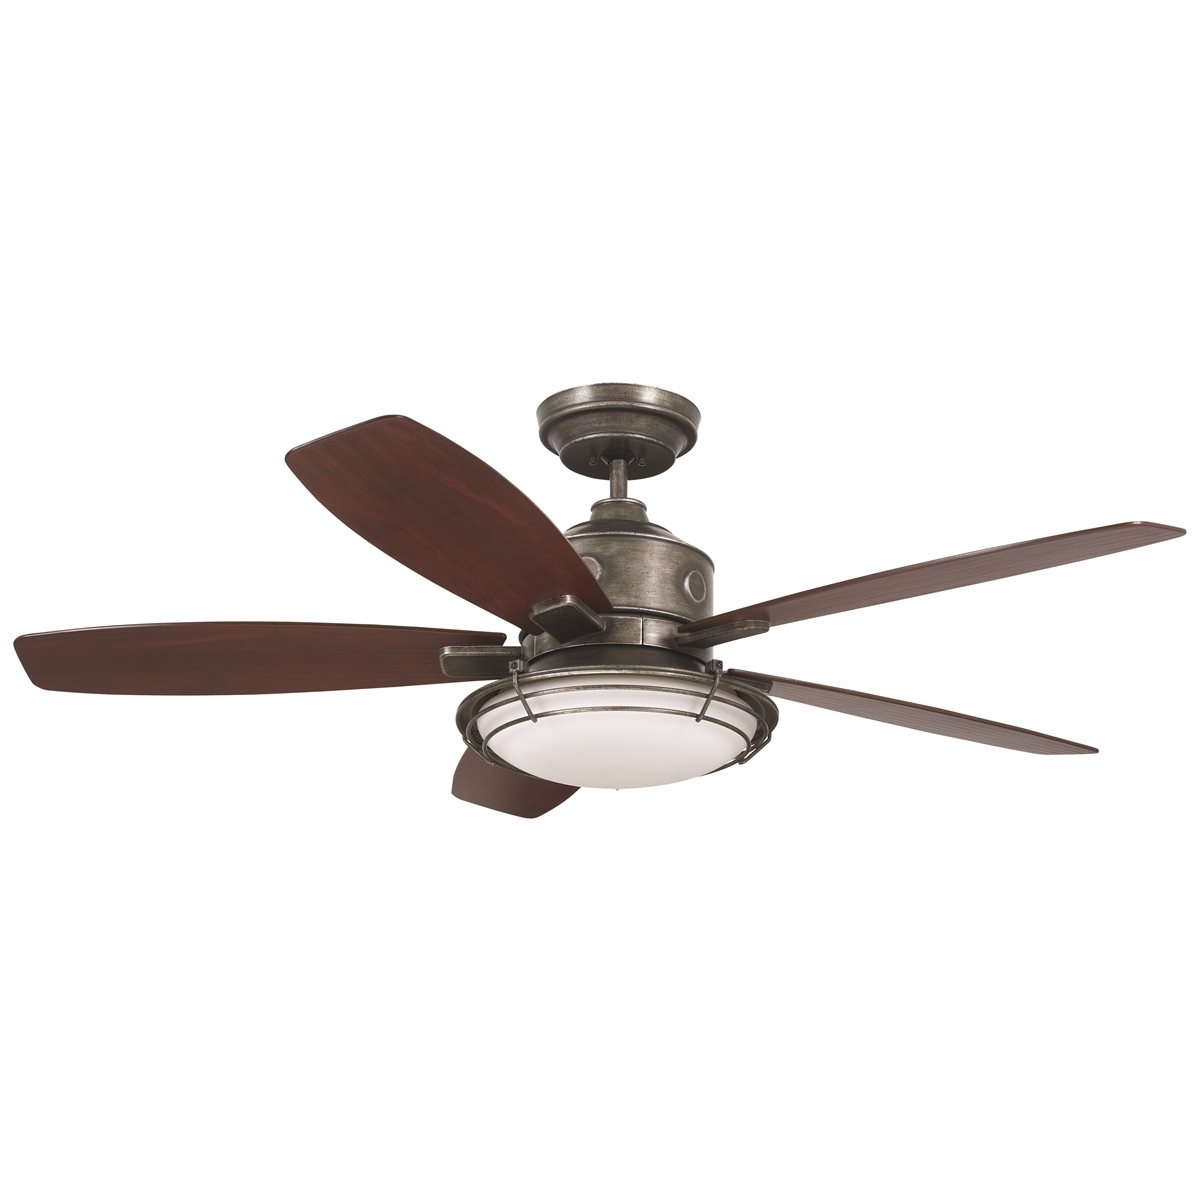 Emerson Outdoor Ceiling Fans With Lights Regarding Preferred Emerson Rockpointe Outdoor Ceiling Fan – Vintage Steel One Each (View 10 of 20)